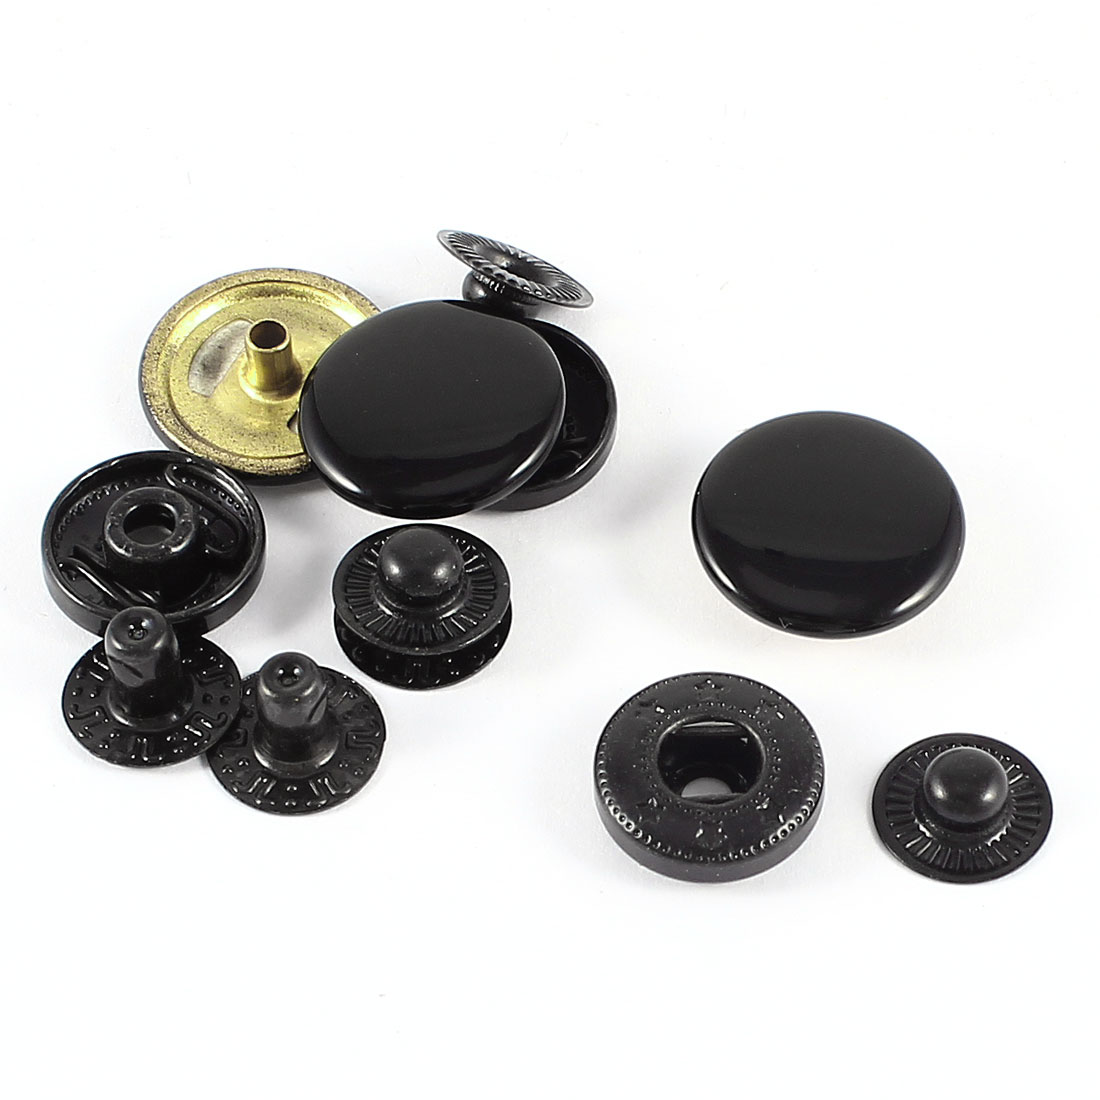 Unique Bargains 3 Sets Metal Snap Fasteners Poppers Sewing Leather 17mm Press Stud Button